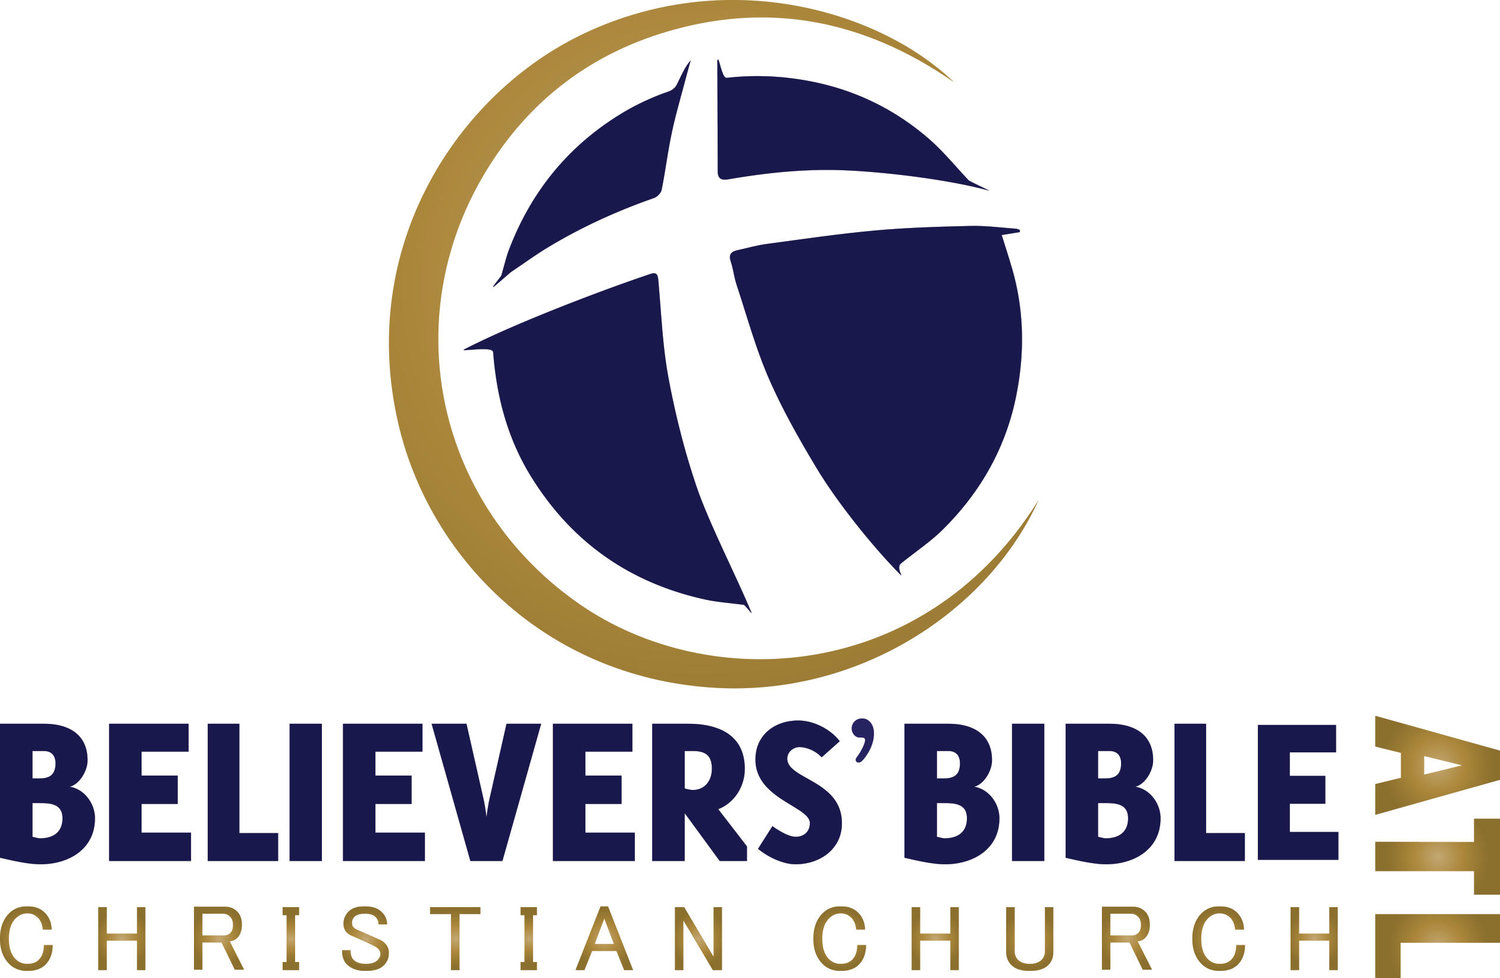 Believer's Bible ATL